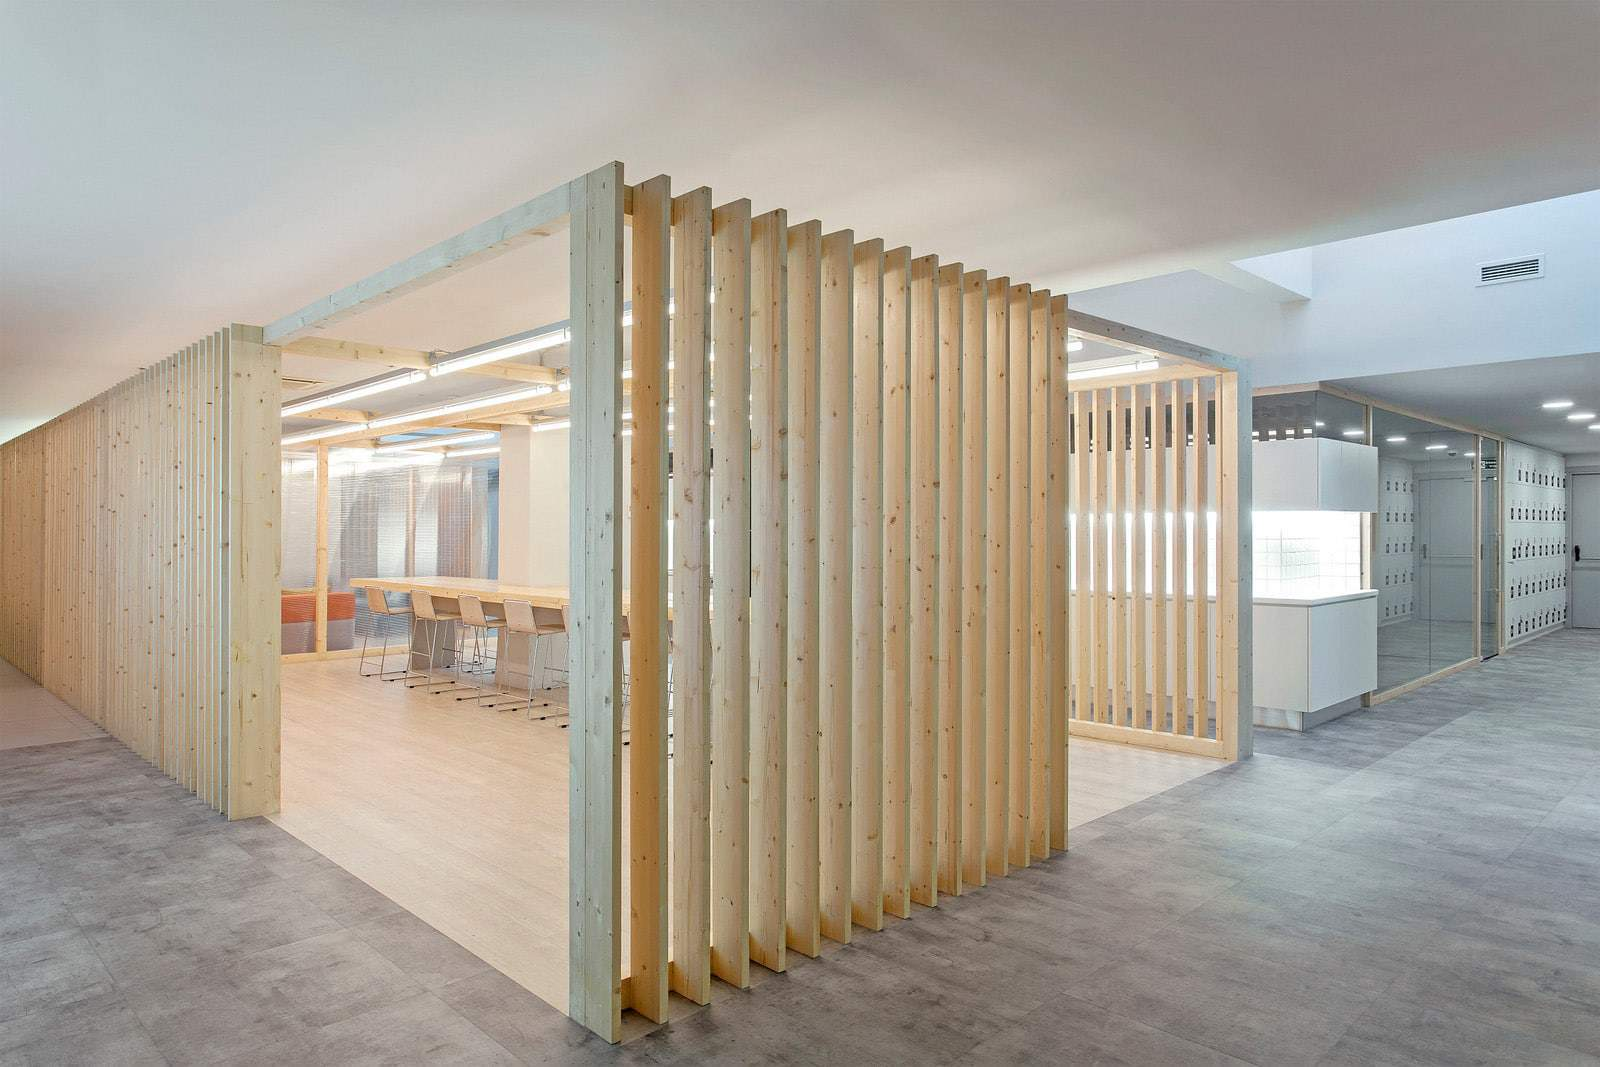 Meeting room with shutter style wood frame walls